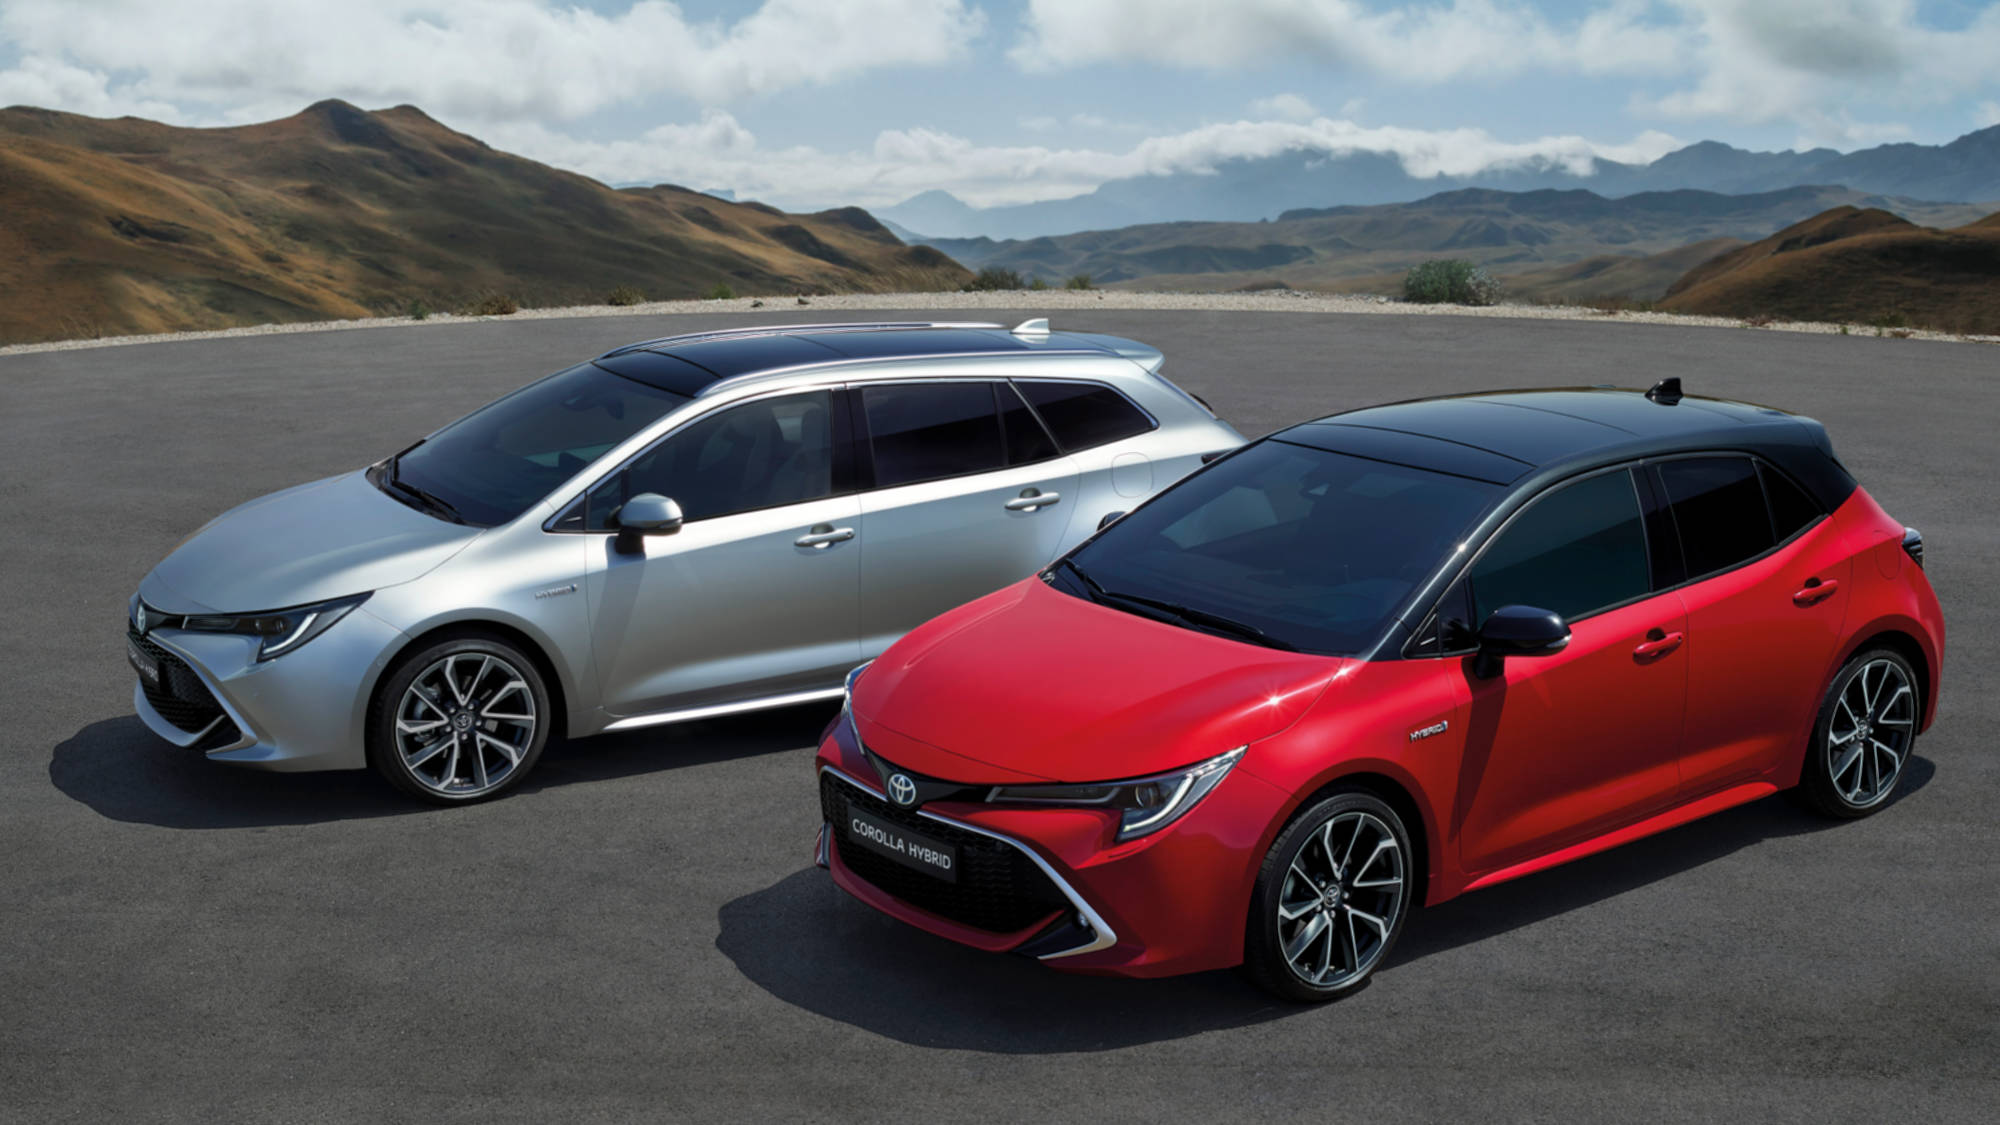 New Toyota Corolla Debuts With Two Flavors at Paris Motor Show 2